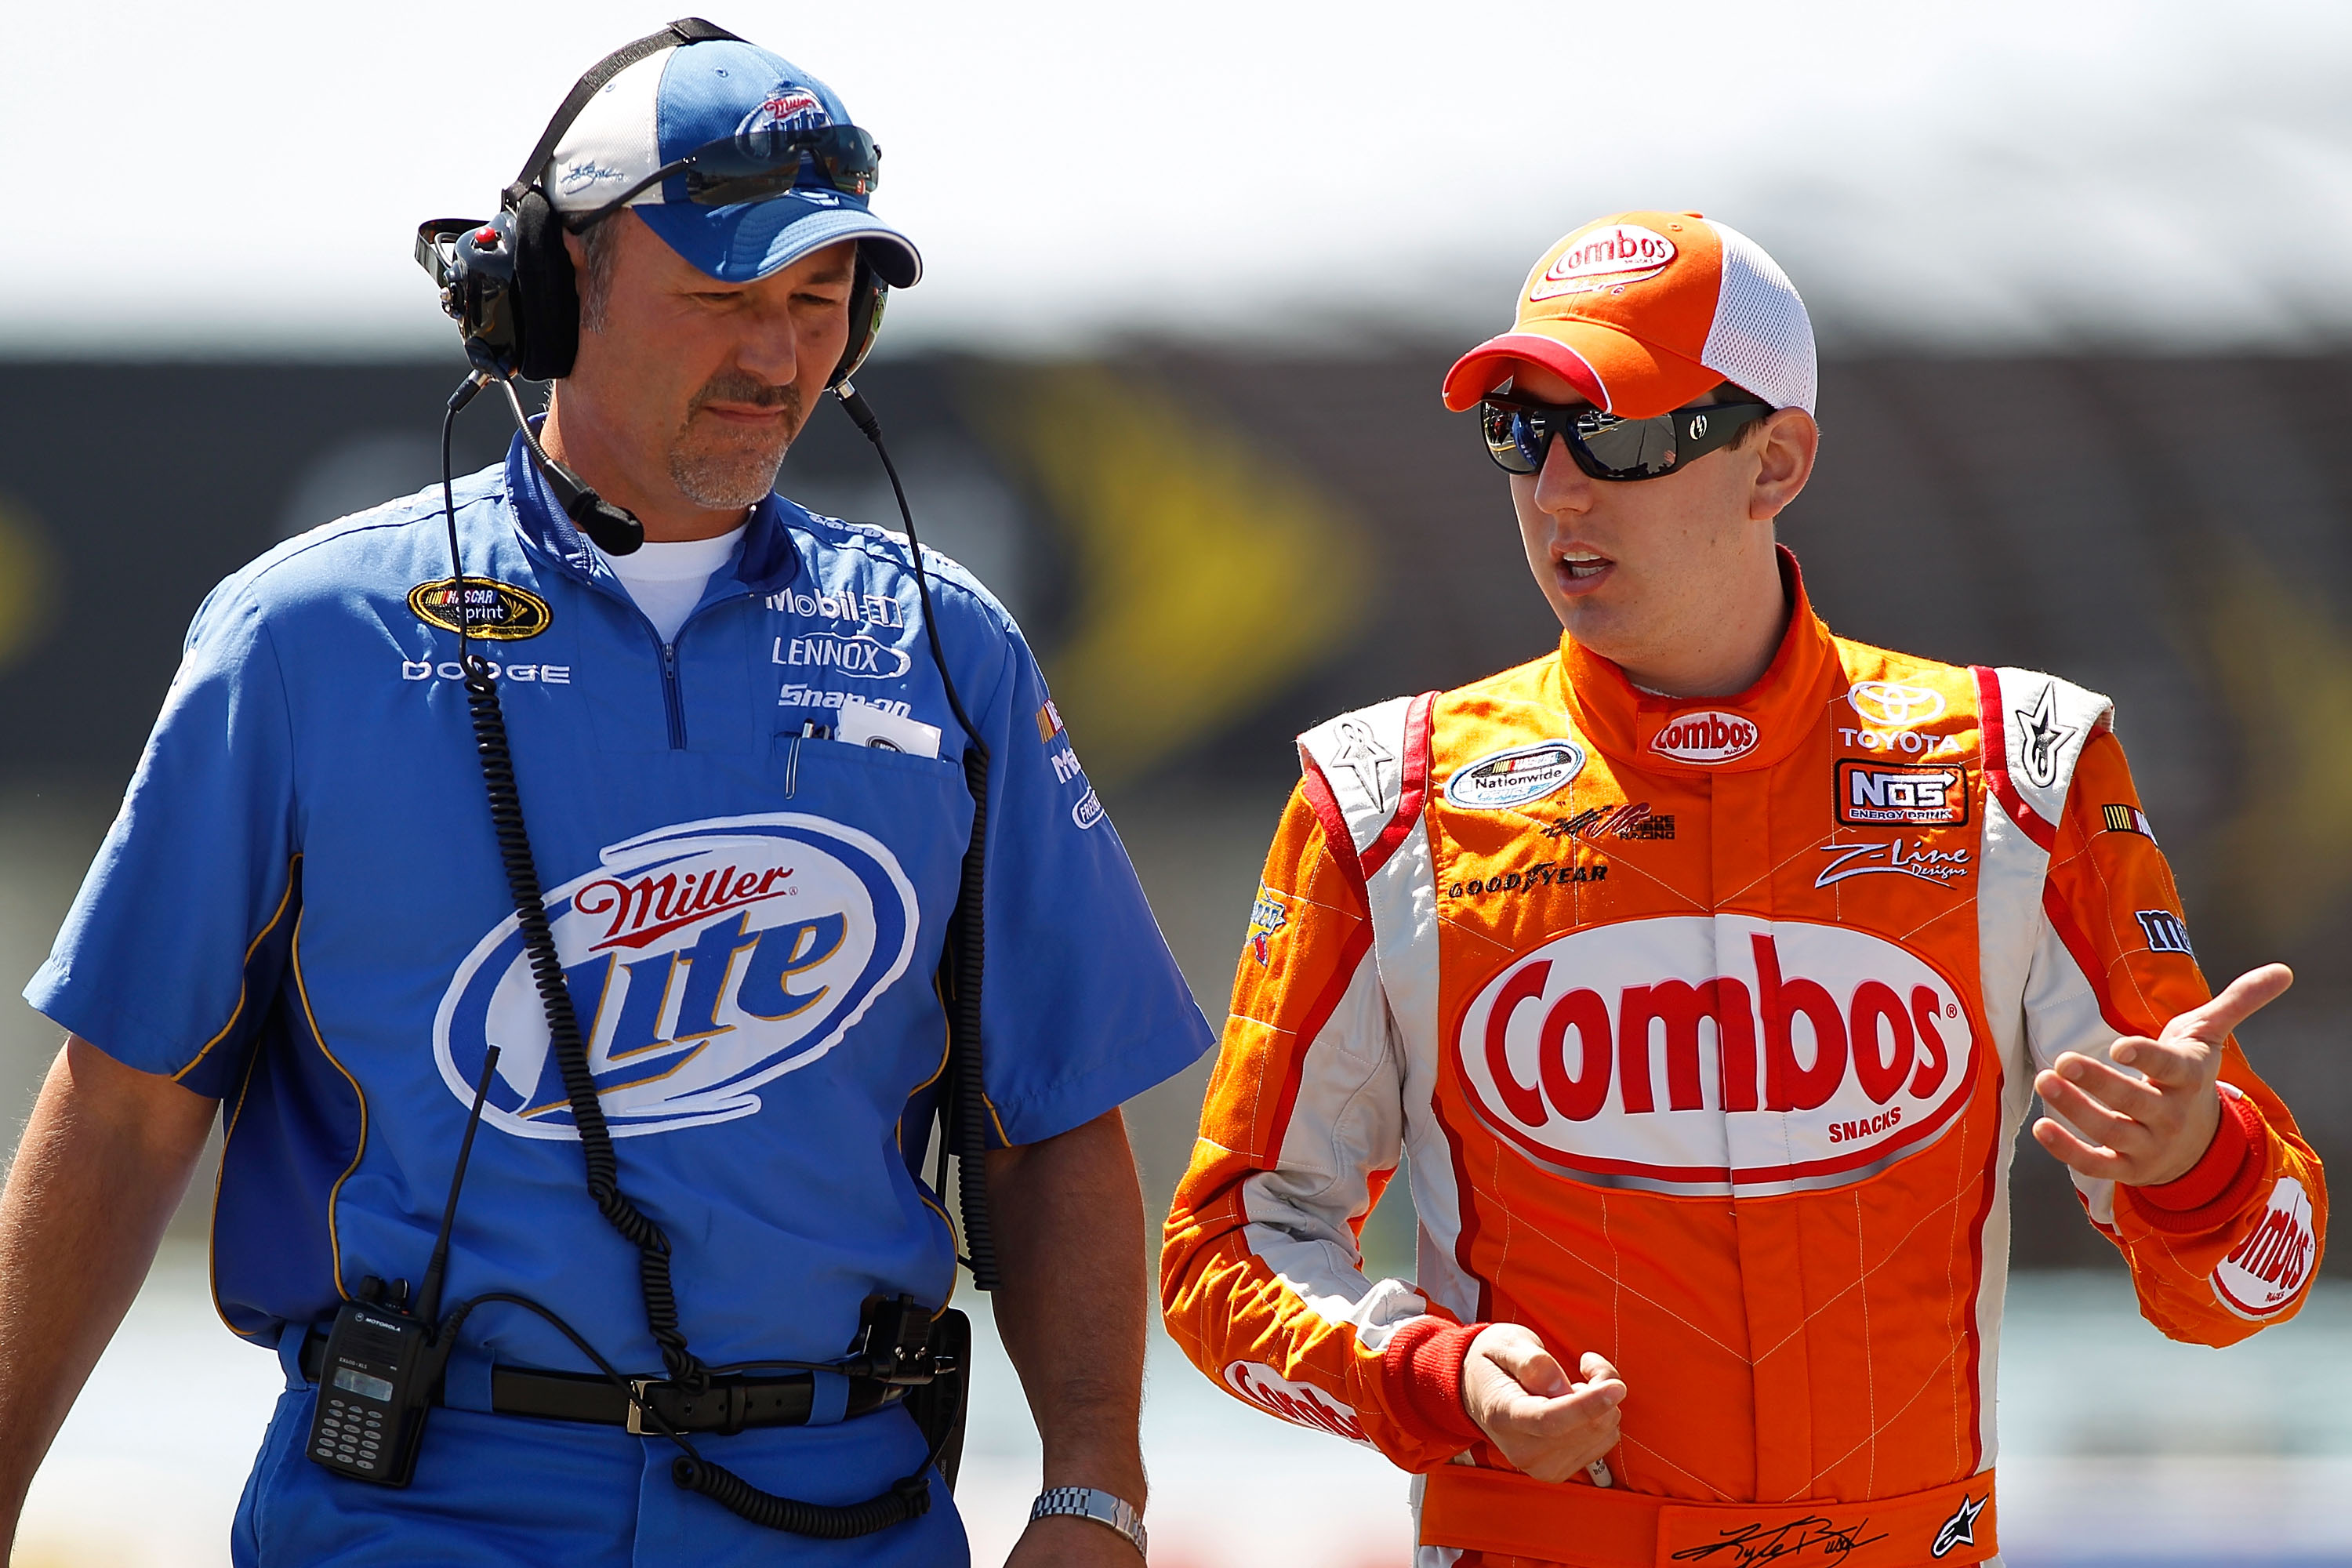 WATKINS GLEN, NY - AUGUST 07:  Kyle Busch (R), driver of the #18 M&M's Toyota, talks with Steve Addington (L), crew chief of the #2 Miller Lite Dodge, during qualifying for the NASCAR Sprint Cup Series Heluva Good! Sour Cream Dips at Watkins Glen Internat